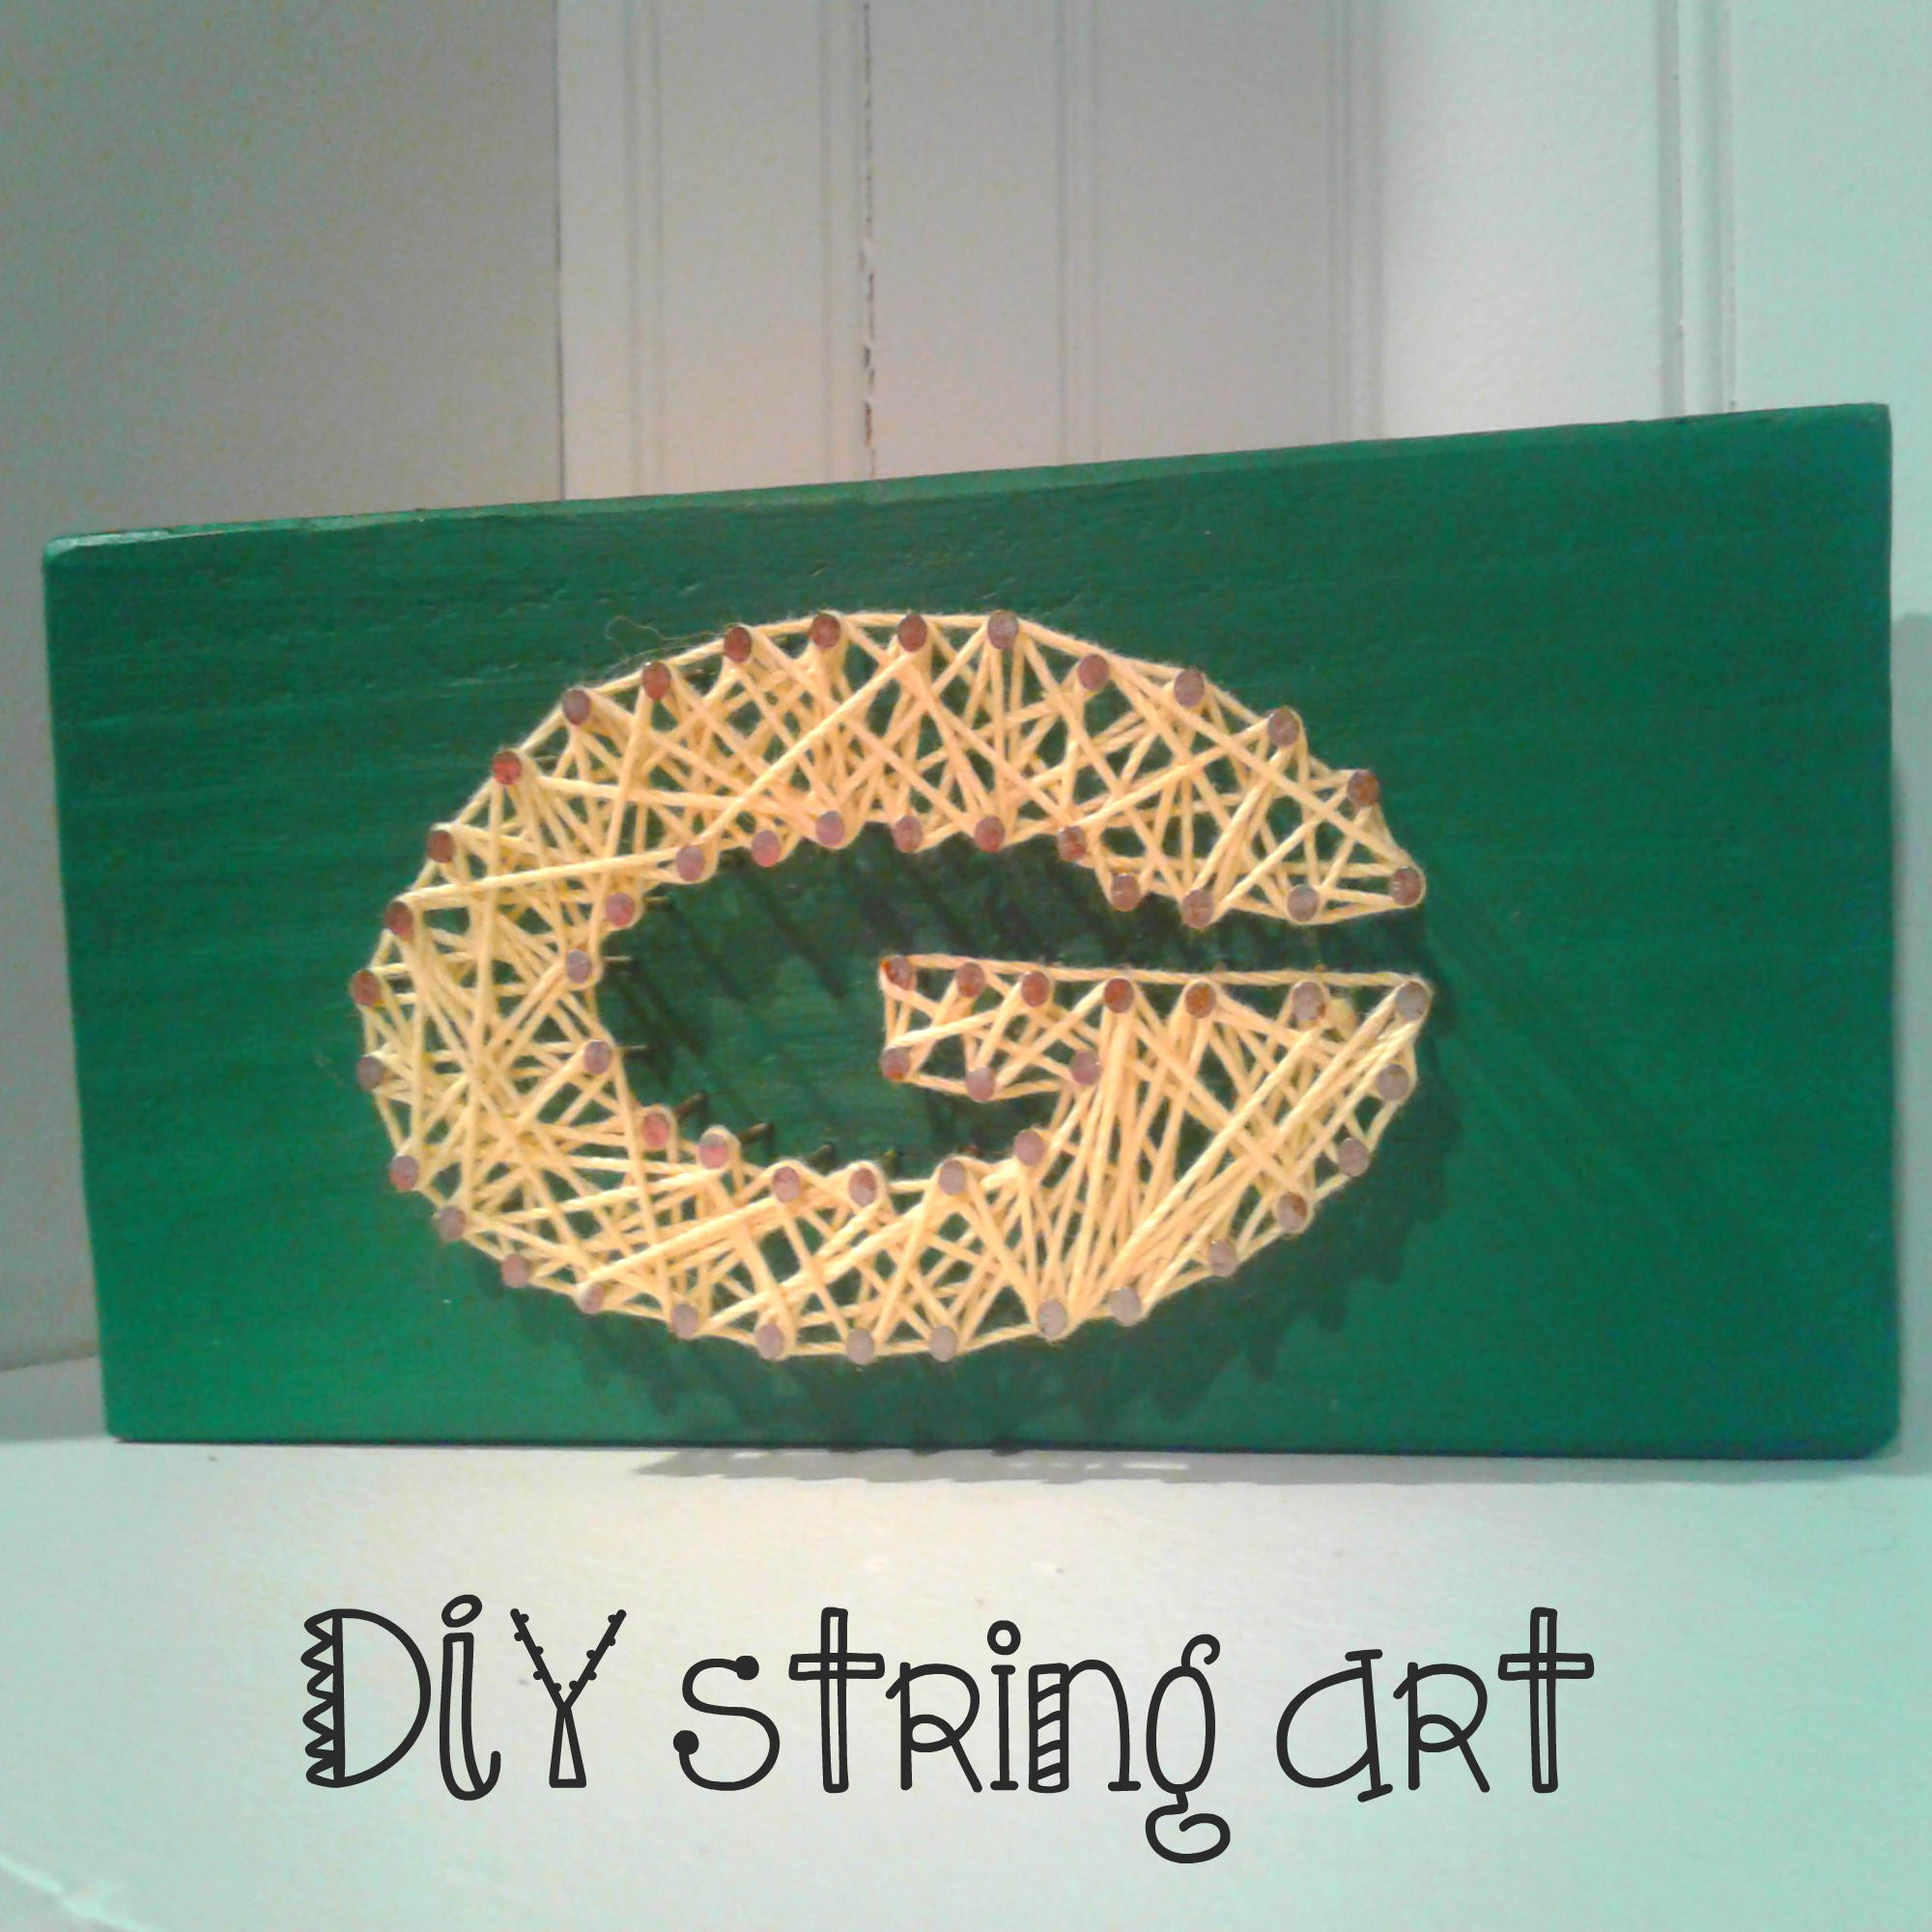 Go pack go packers string art how to make your own diy string art packers string art how to make your own diy string art solutioingenieria Images